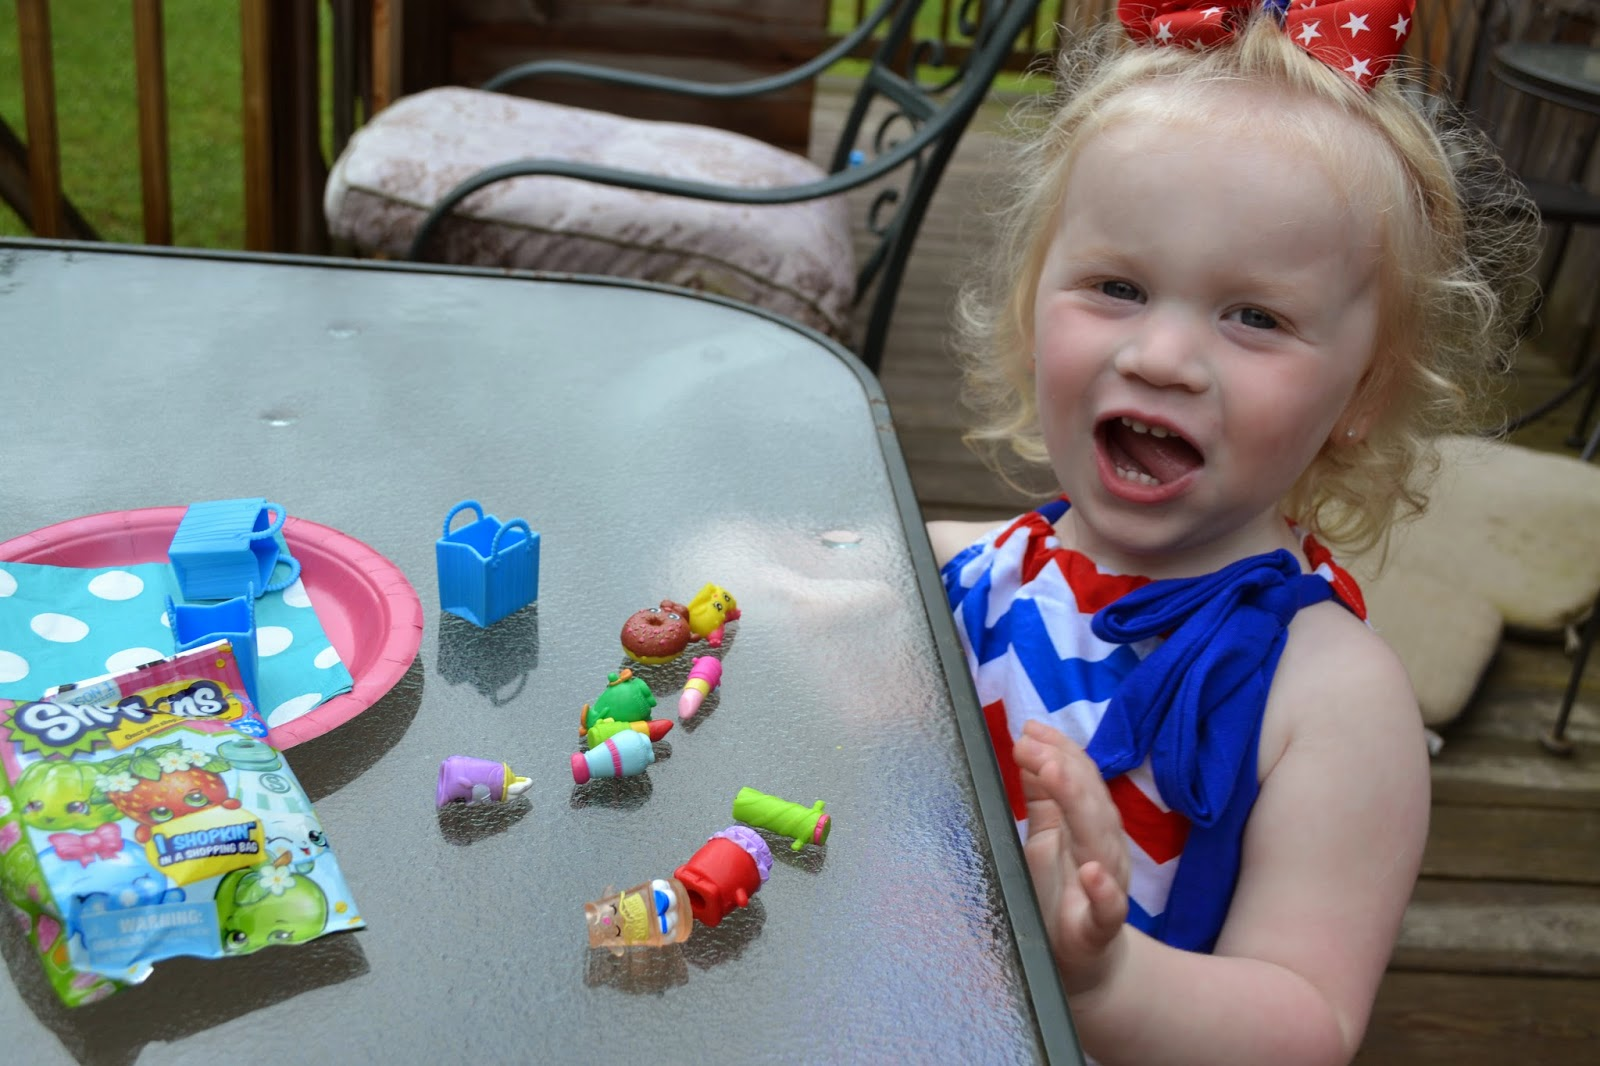 shopkin7 Shopkins Summer Playdate   What a great day with new collectible and a  Shopkins prize pack giveaway!